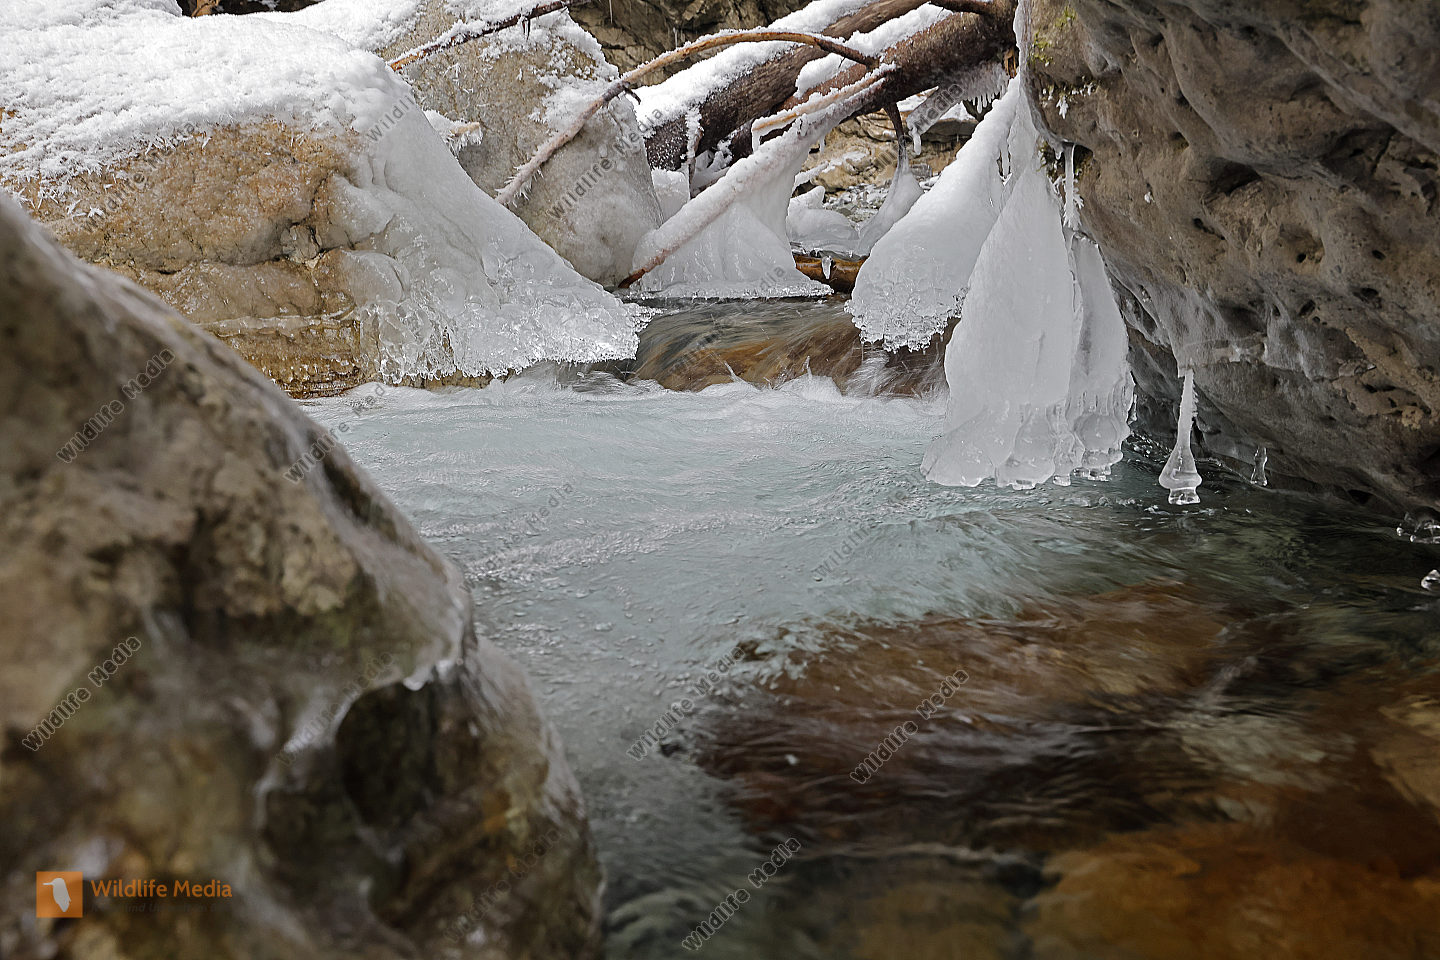 Taugler Strubklamm Winter